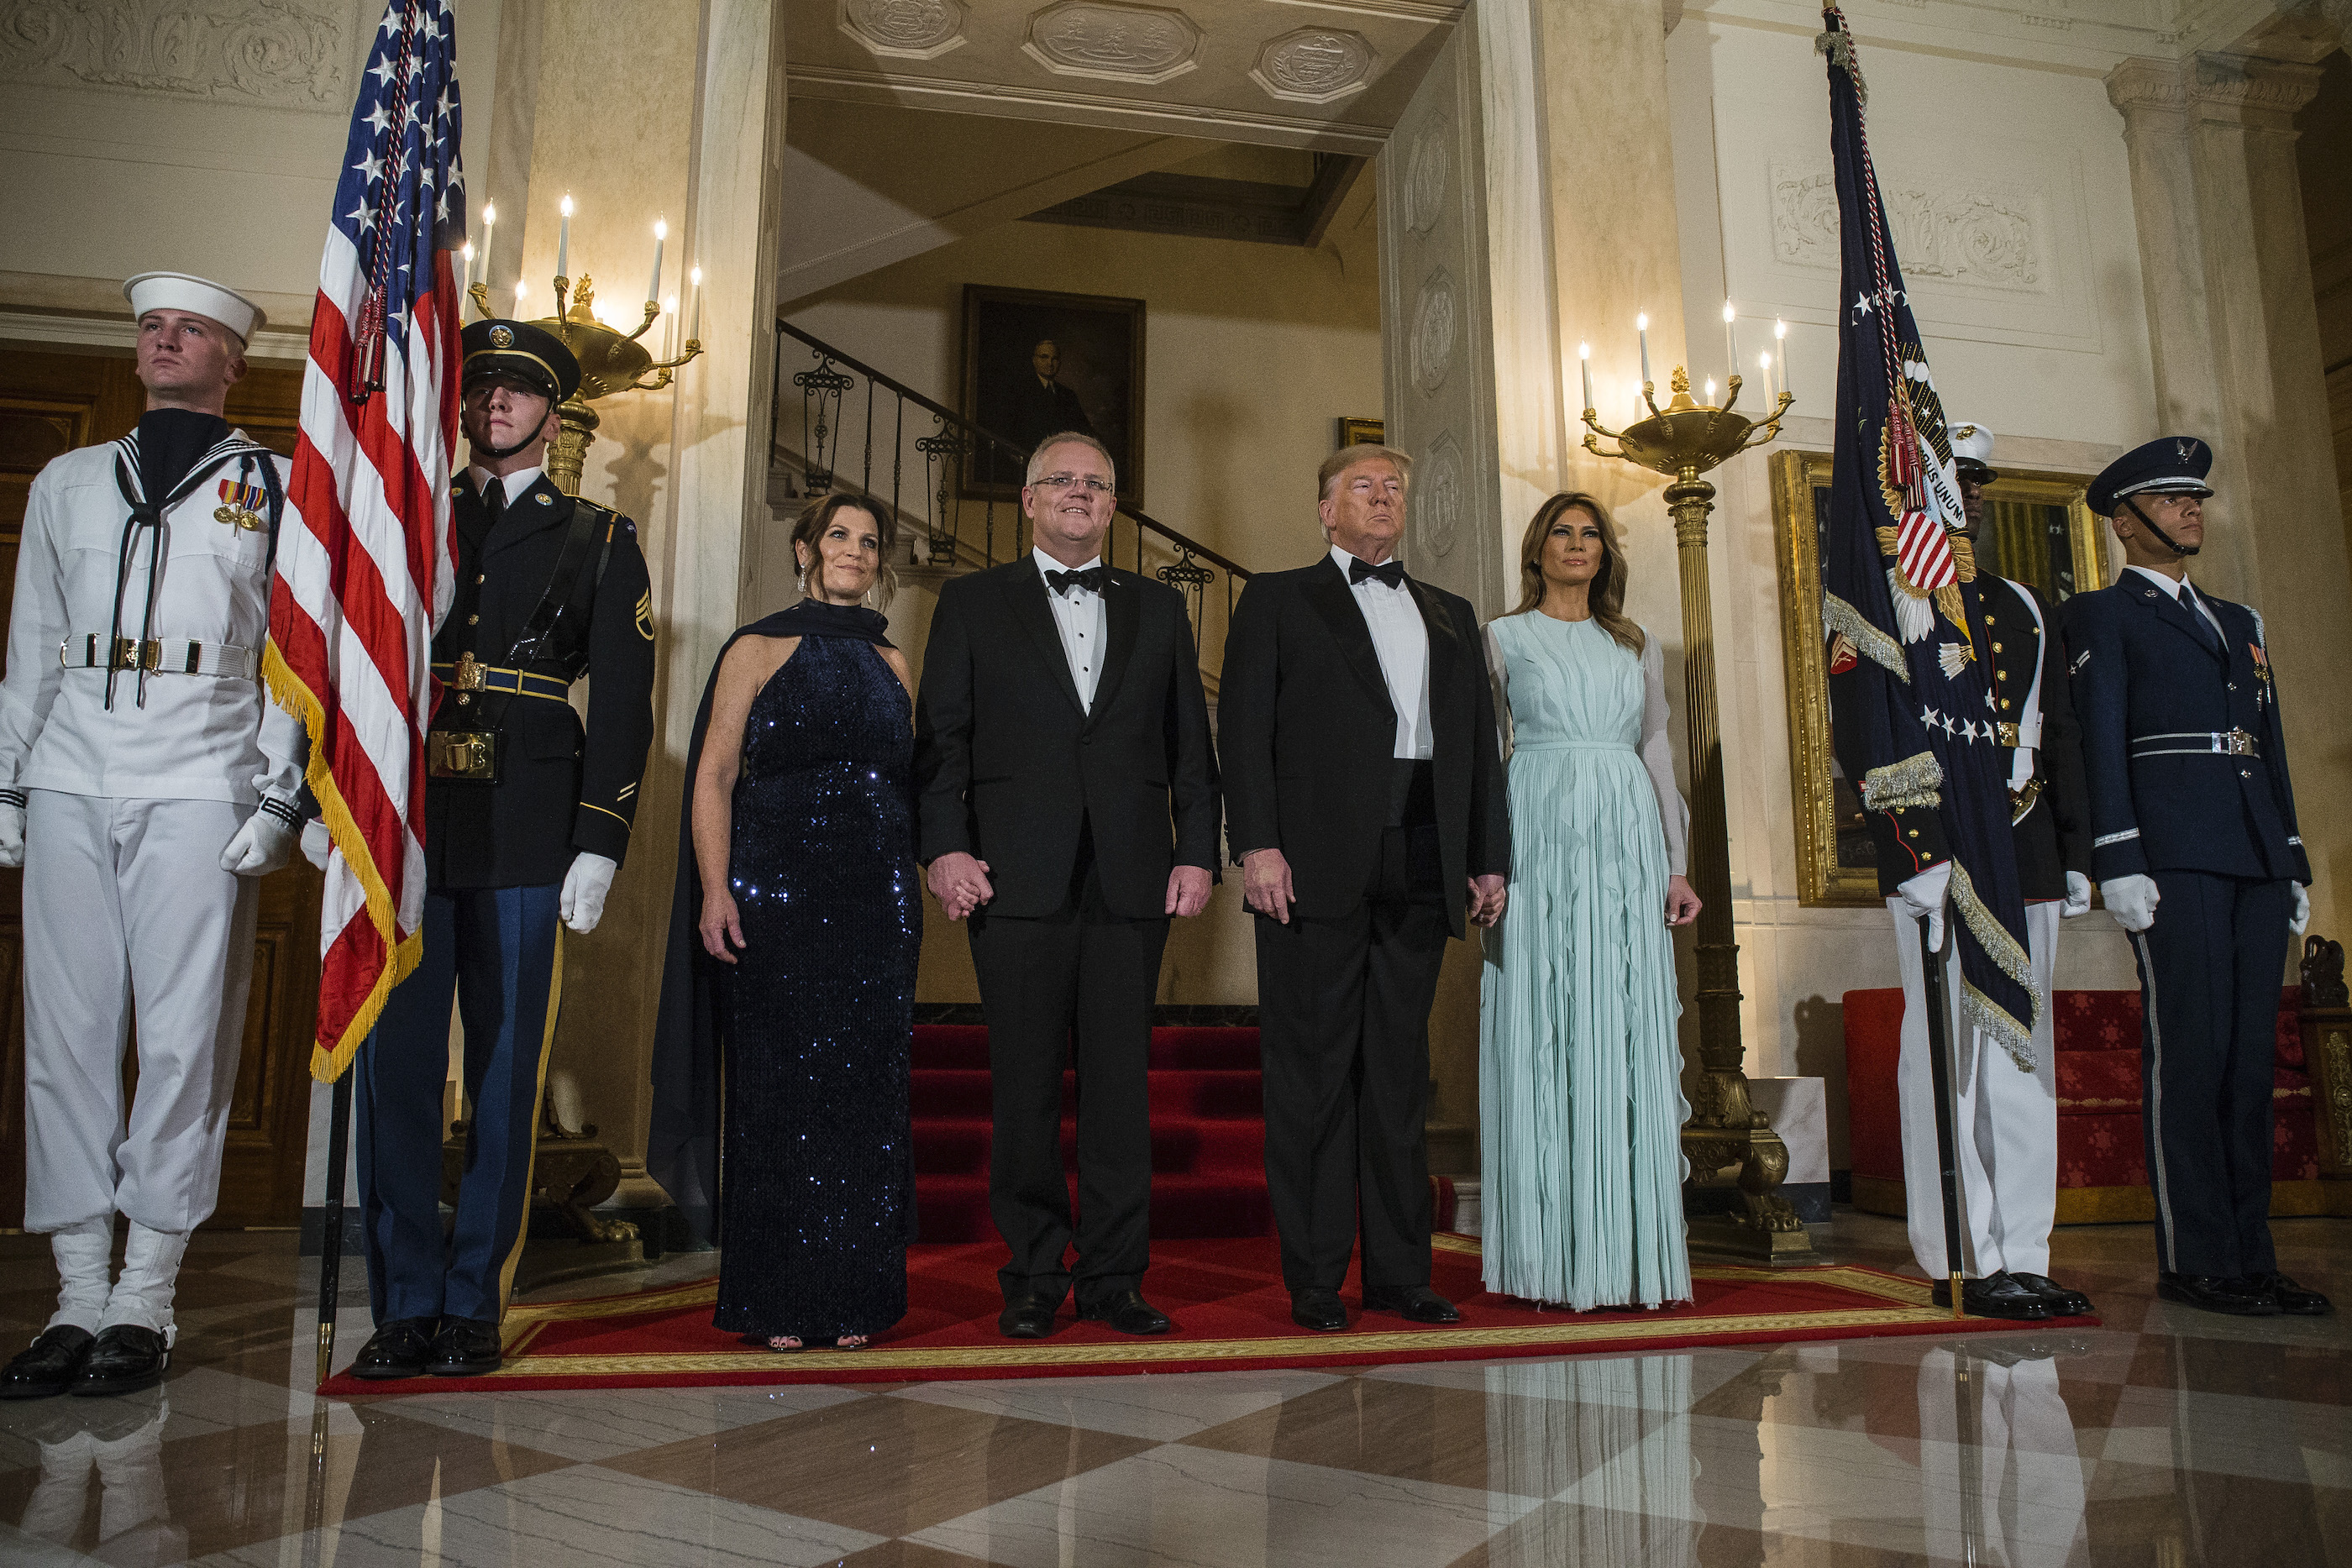 President Donald Trump and first lady Melania Trump, Australian Prime Minister Scott Morrison, and his wife, Jenny, in the White House Grand Foyer.